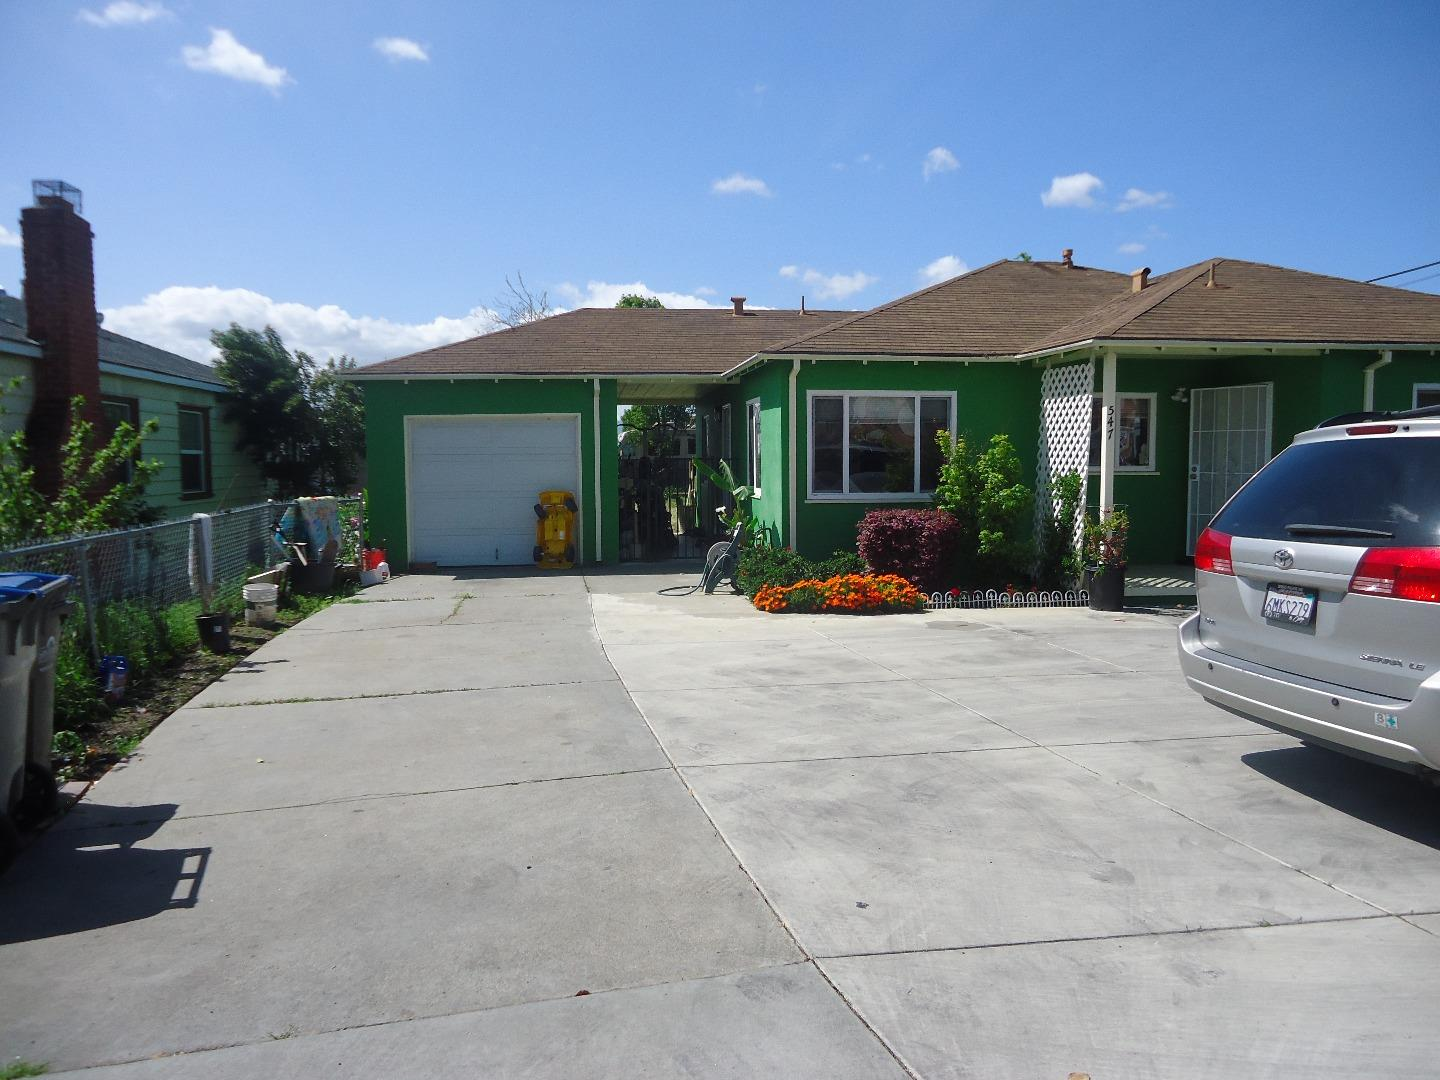 Additional photo for property listing at 547 MCLAUGHLIN Avenue  San Jose, California 95116 United States